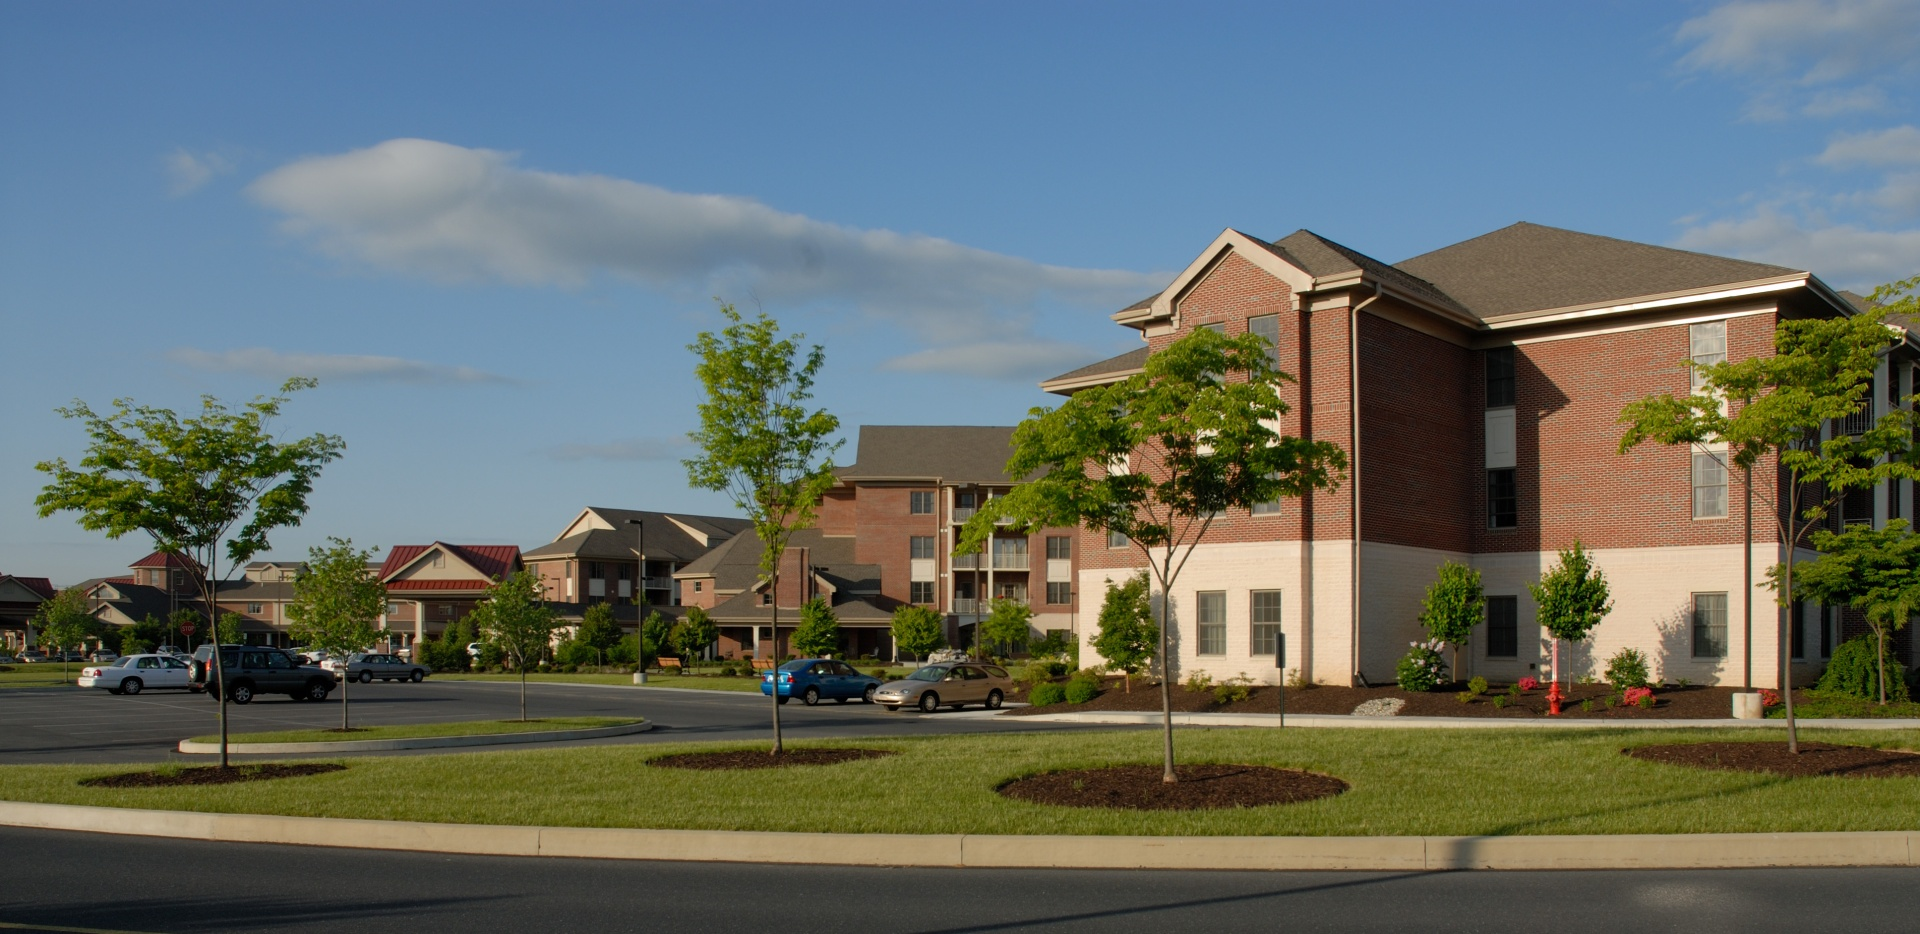 phoenicia senior singles Official phoenicia apartments for rent see photos, current prices, floor plans, and details for 234 apartments in phoenicia, ny.